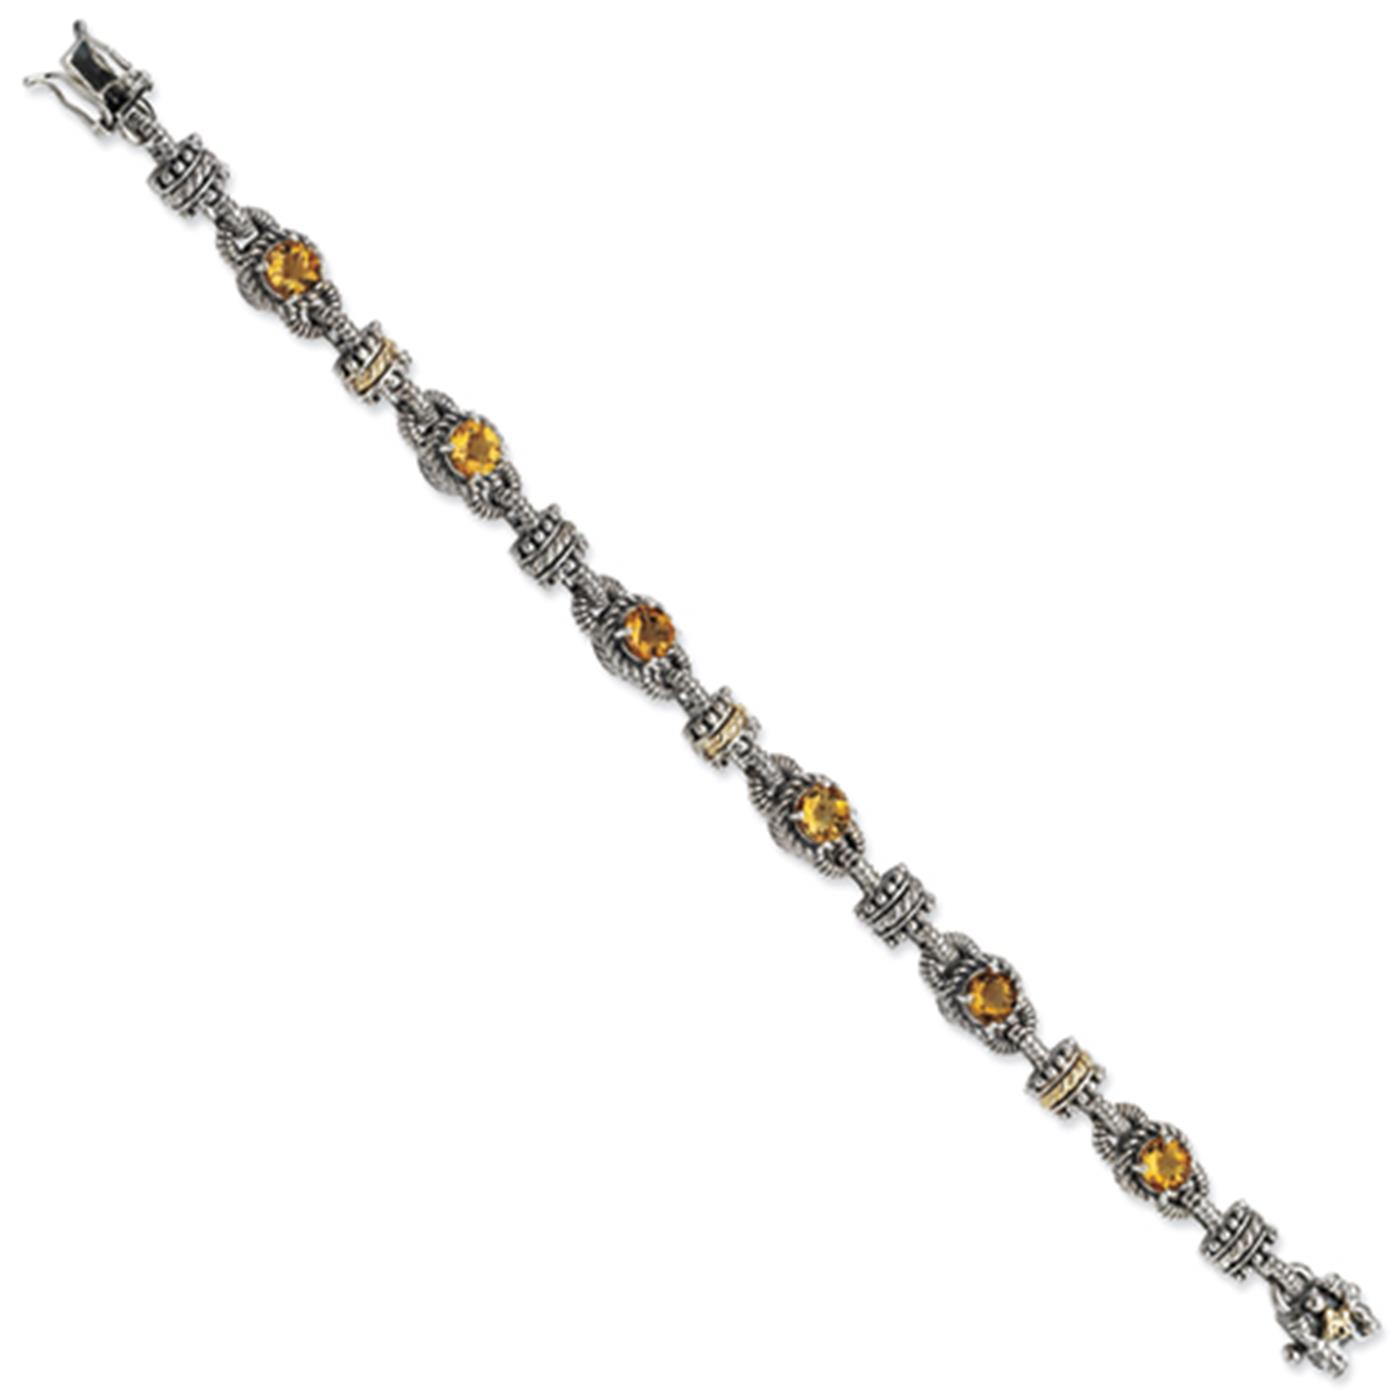 "Shey Couture 925 Sterling Silver w 14k Citrine Antiqued Bracelet 7.5"" by Fusion Collections"